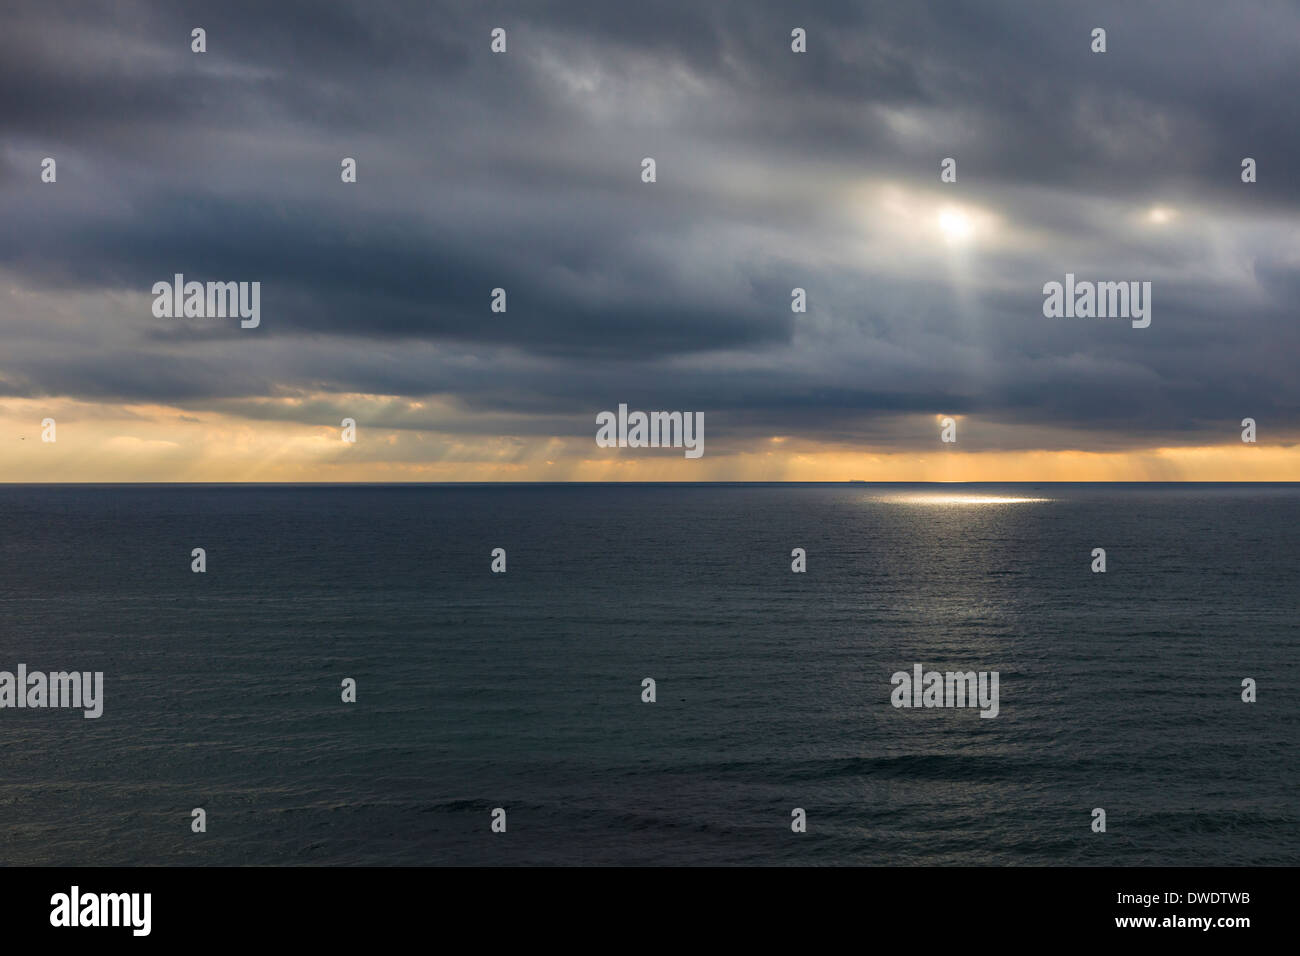 Sunrays slipping through the clouds over a calm ocean - Stock Image